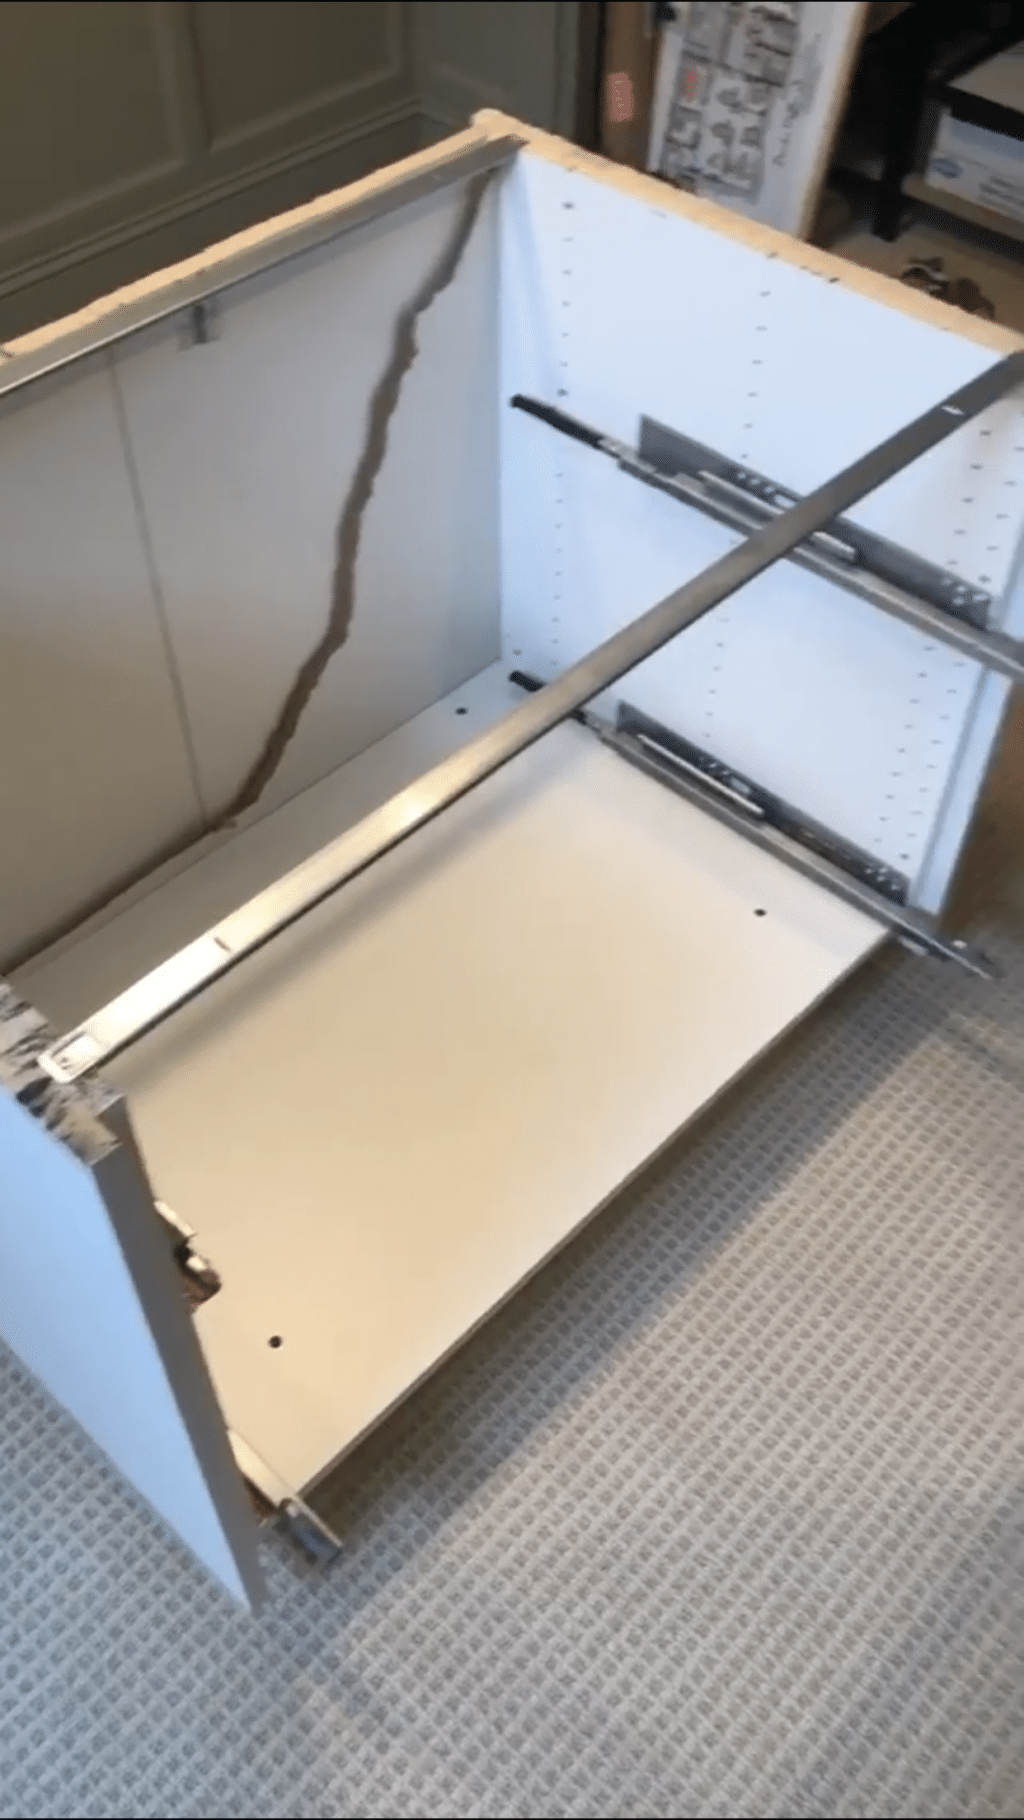 Cutting the standing desk